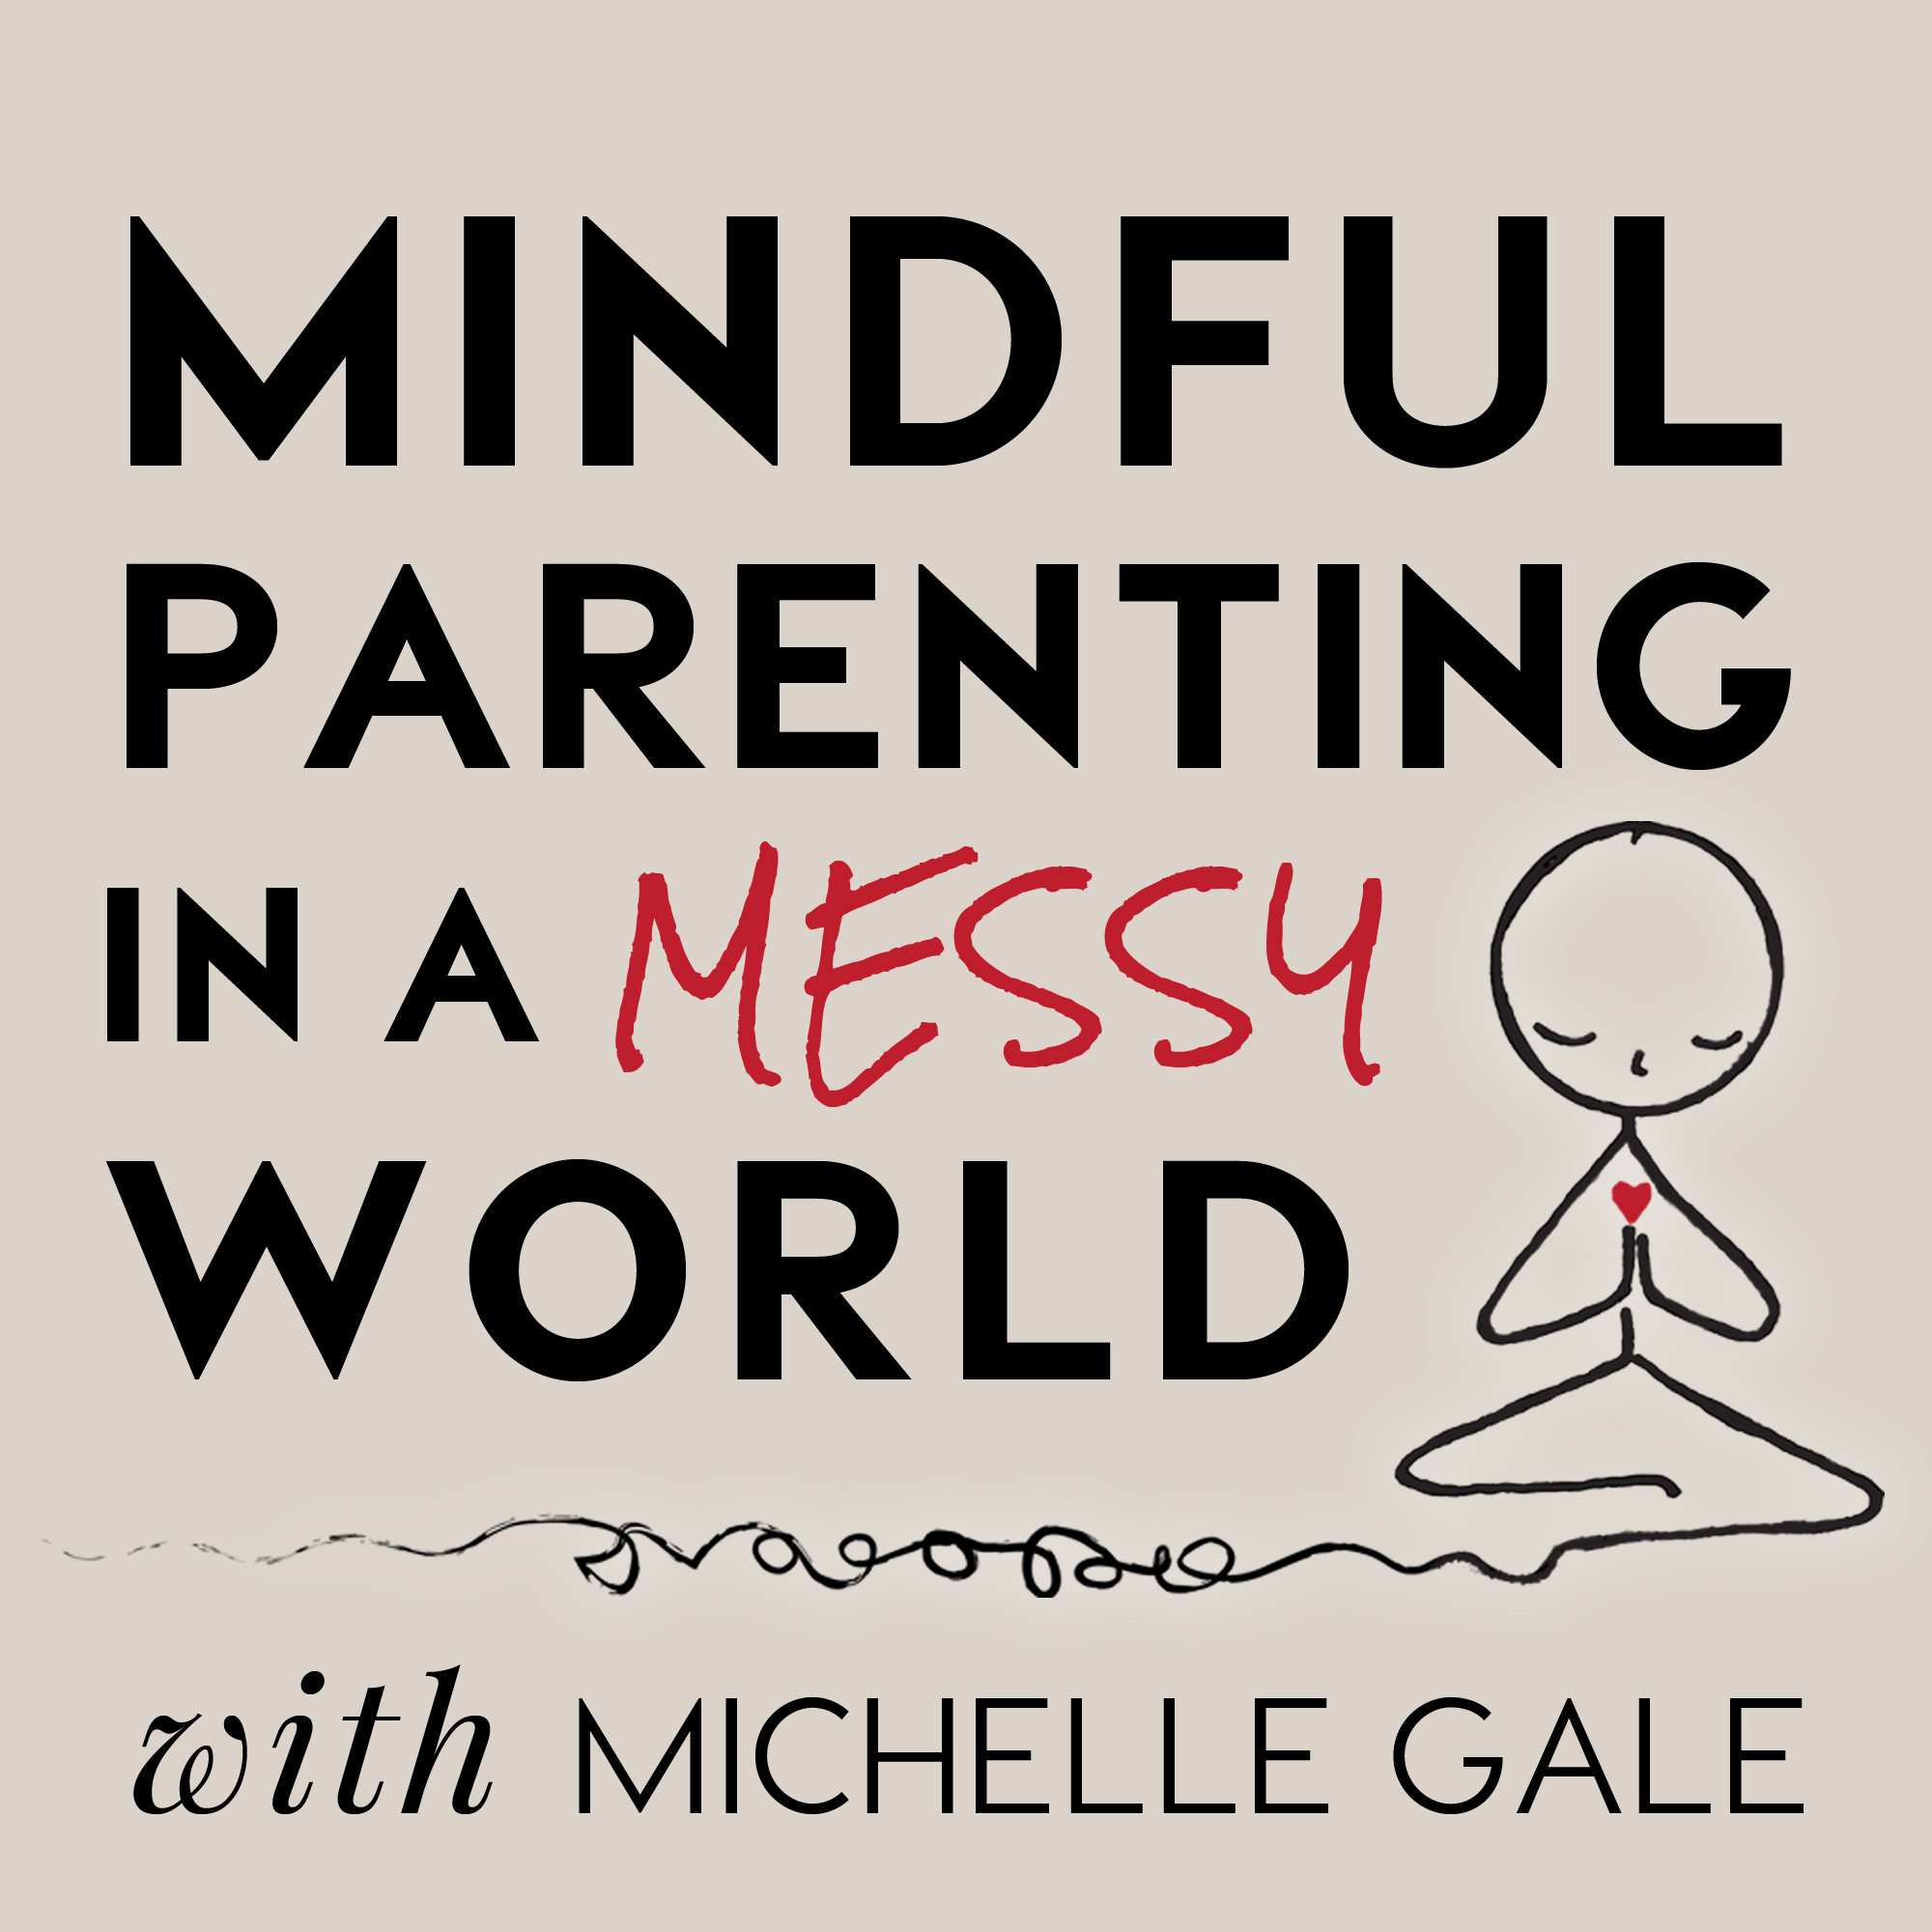 054 Using Mindfulness For Emotions - Tools for the Messiness of Everyday Life from the Happily Family Conference